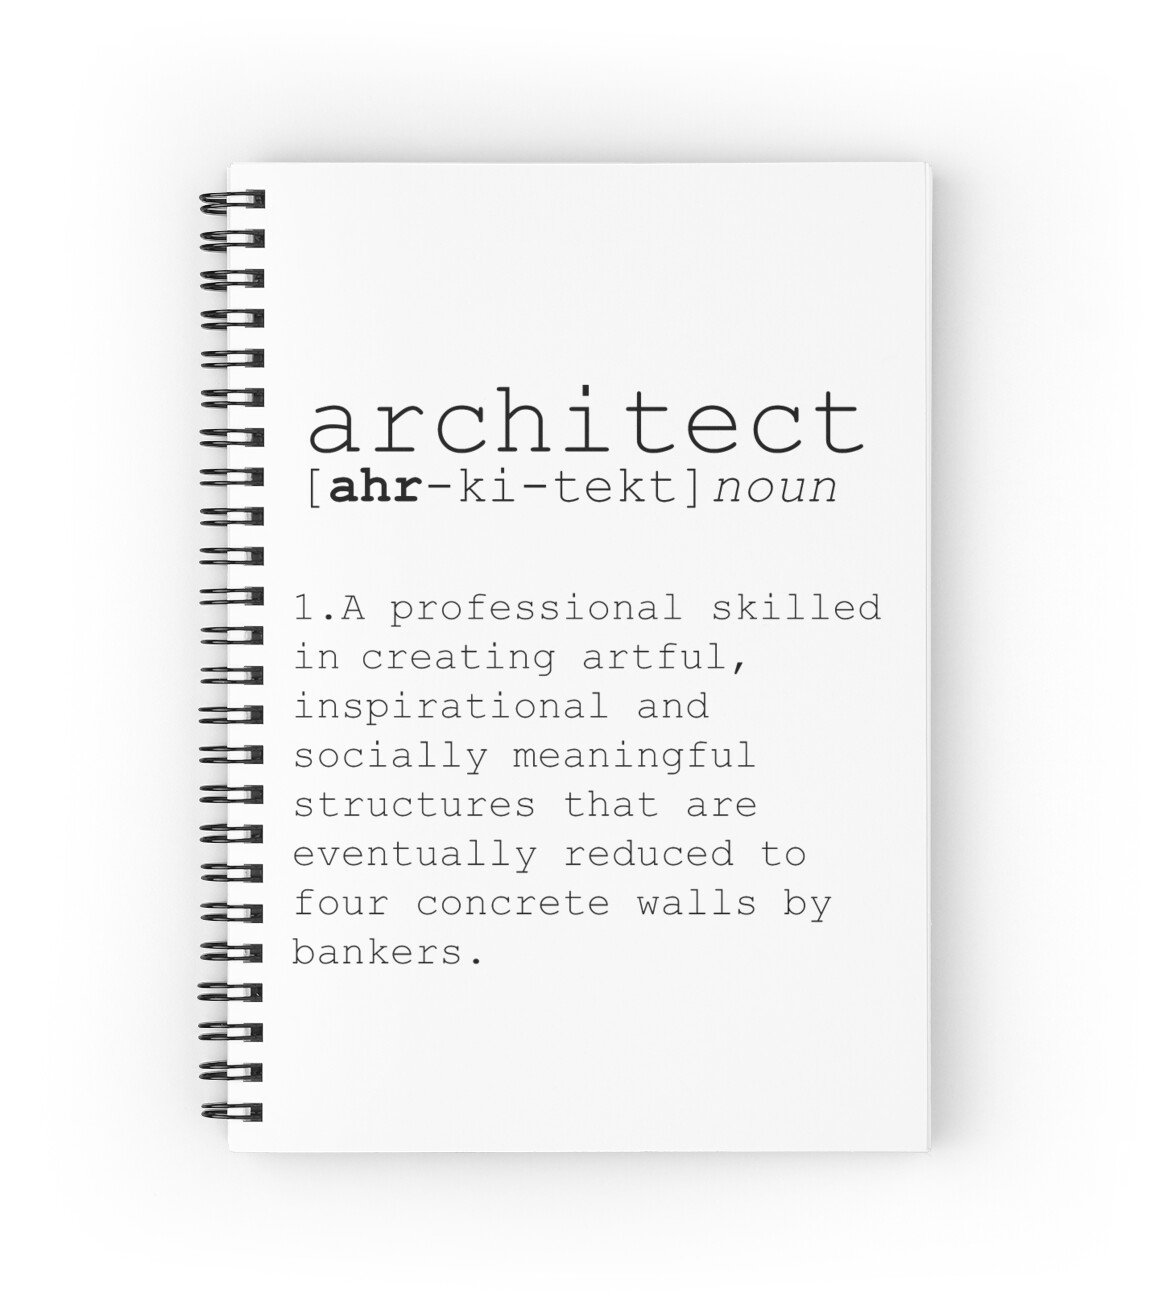 Quotes Definition Architect Definition Dictionary Art Print Dictionary Art Office